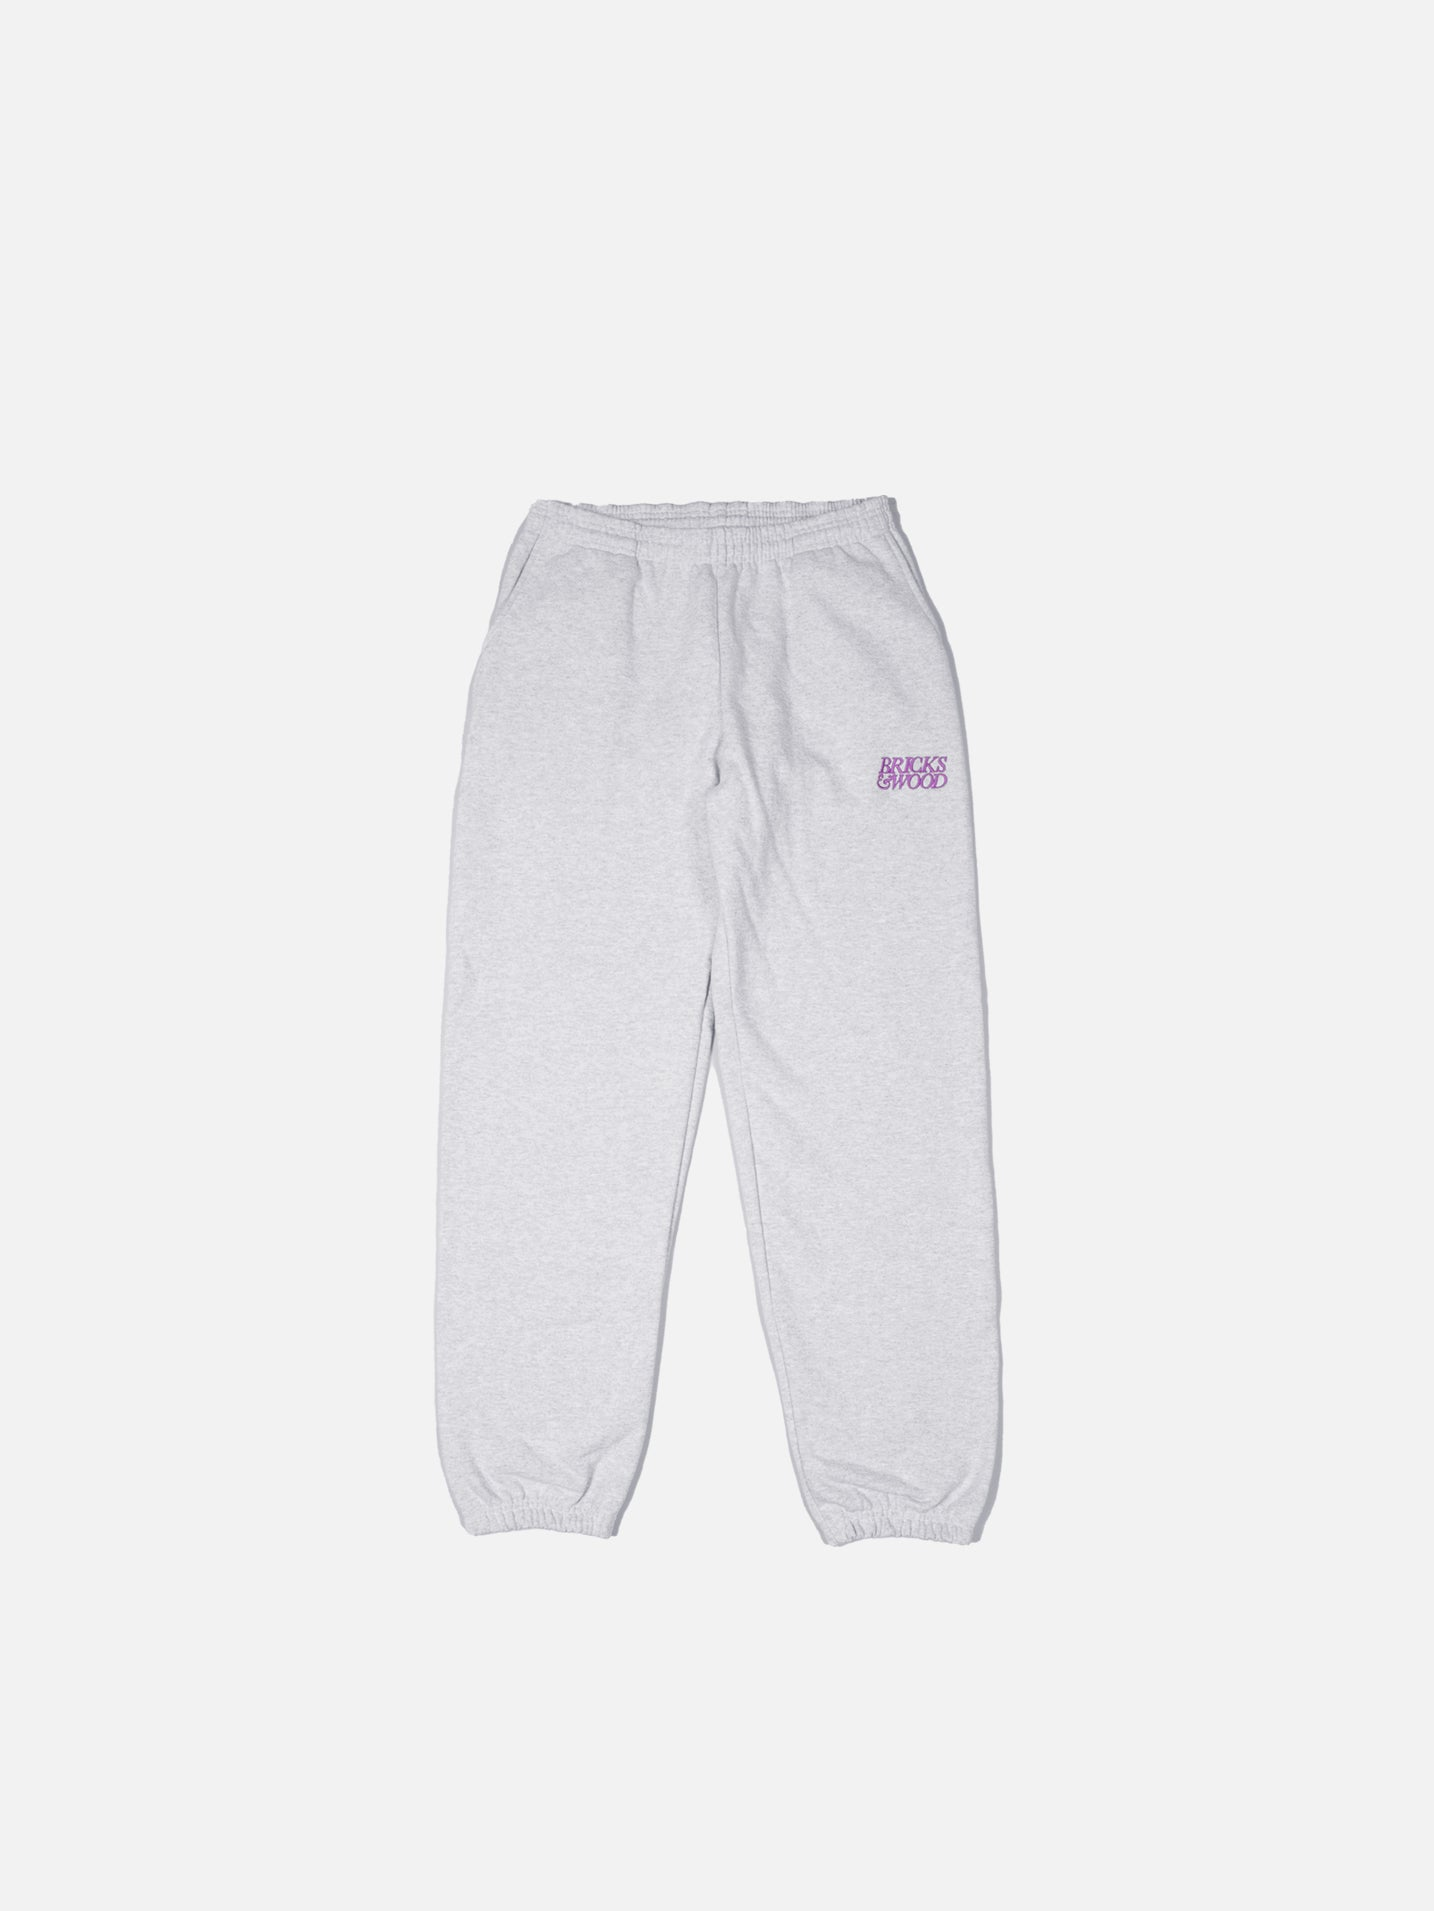 W/ Love Sweatpants - Ash/Purple